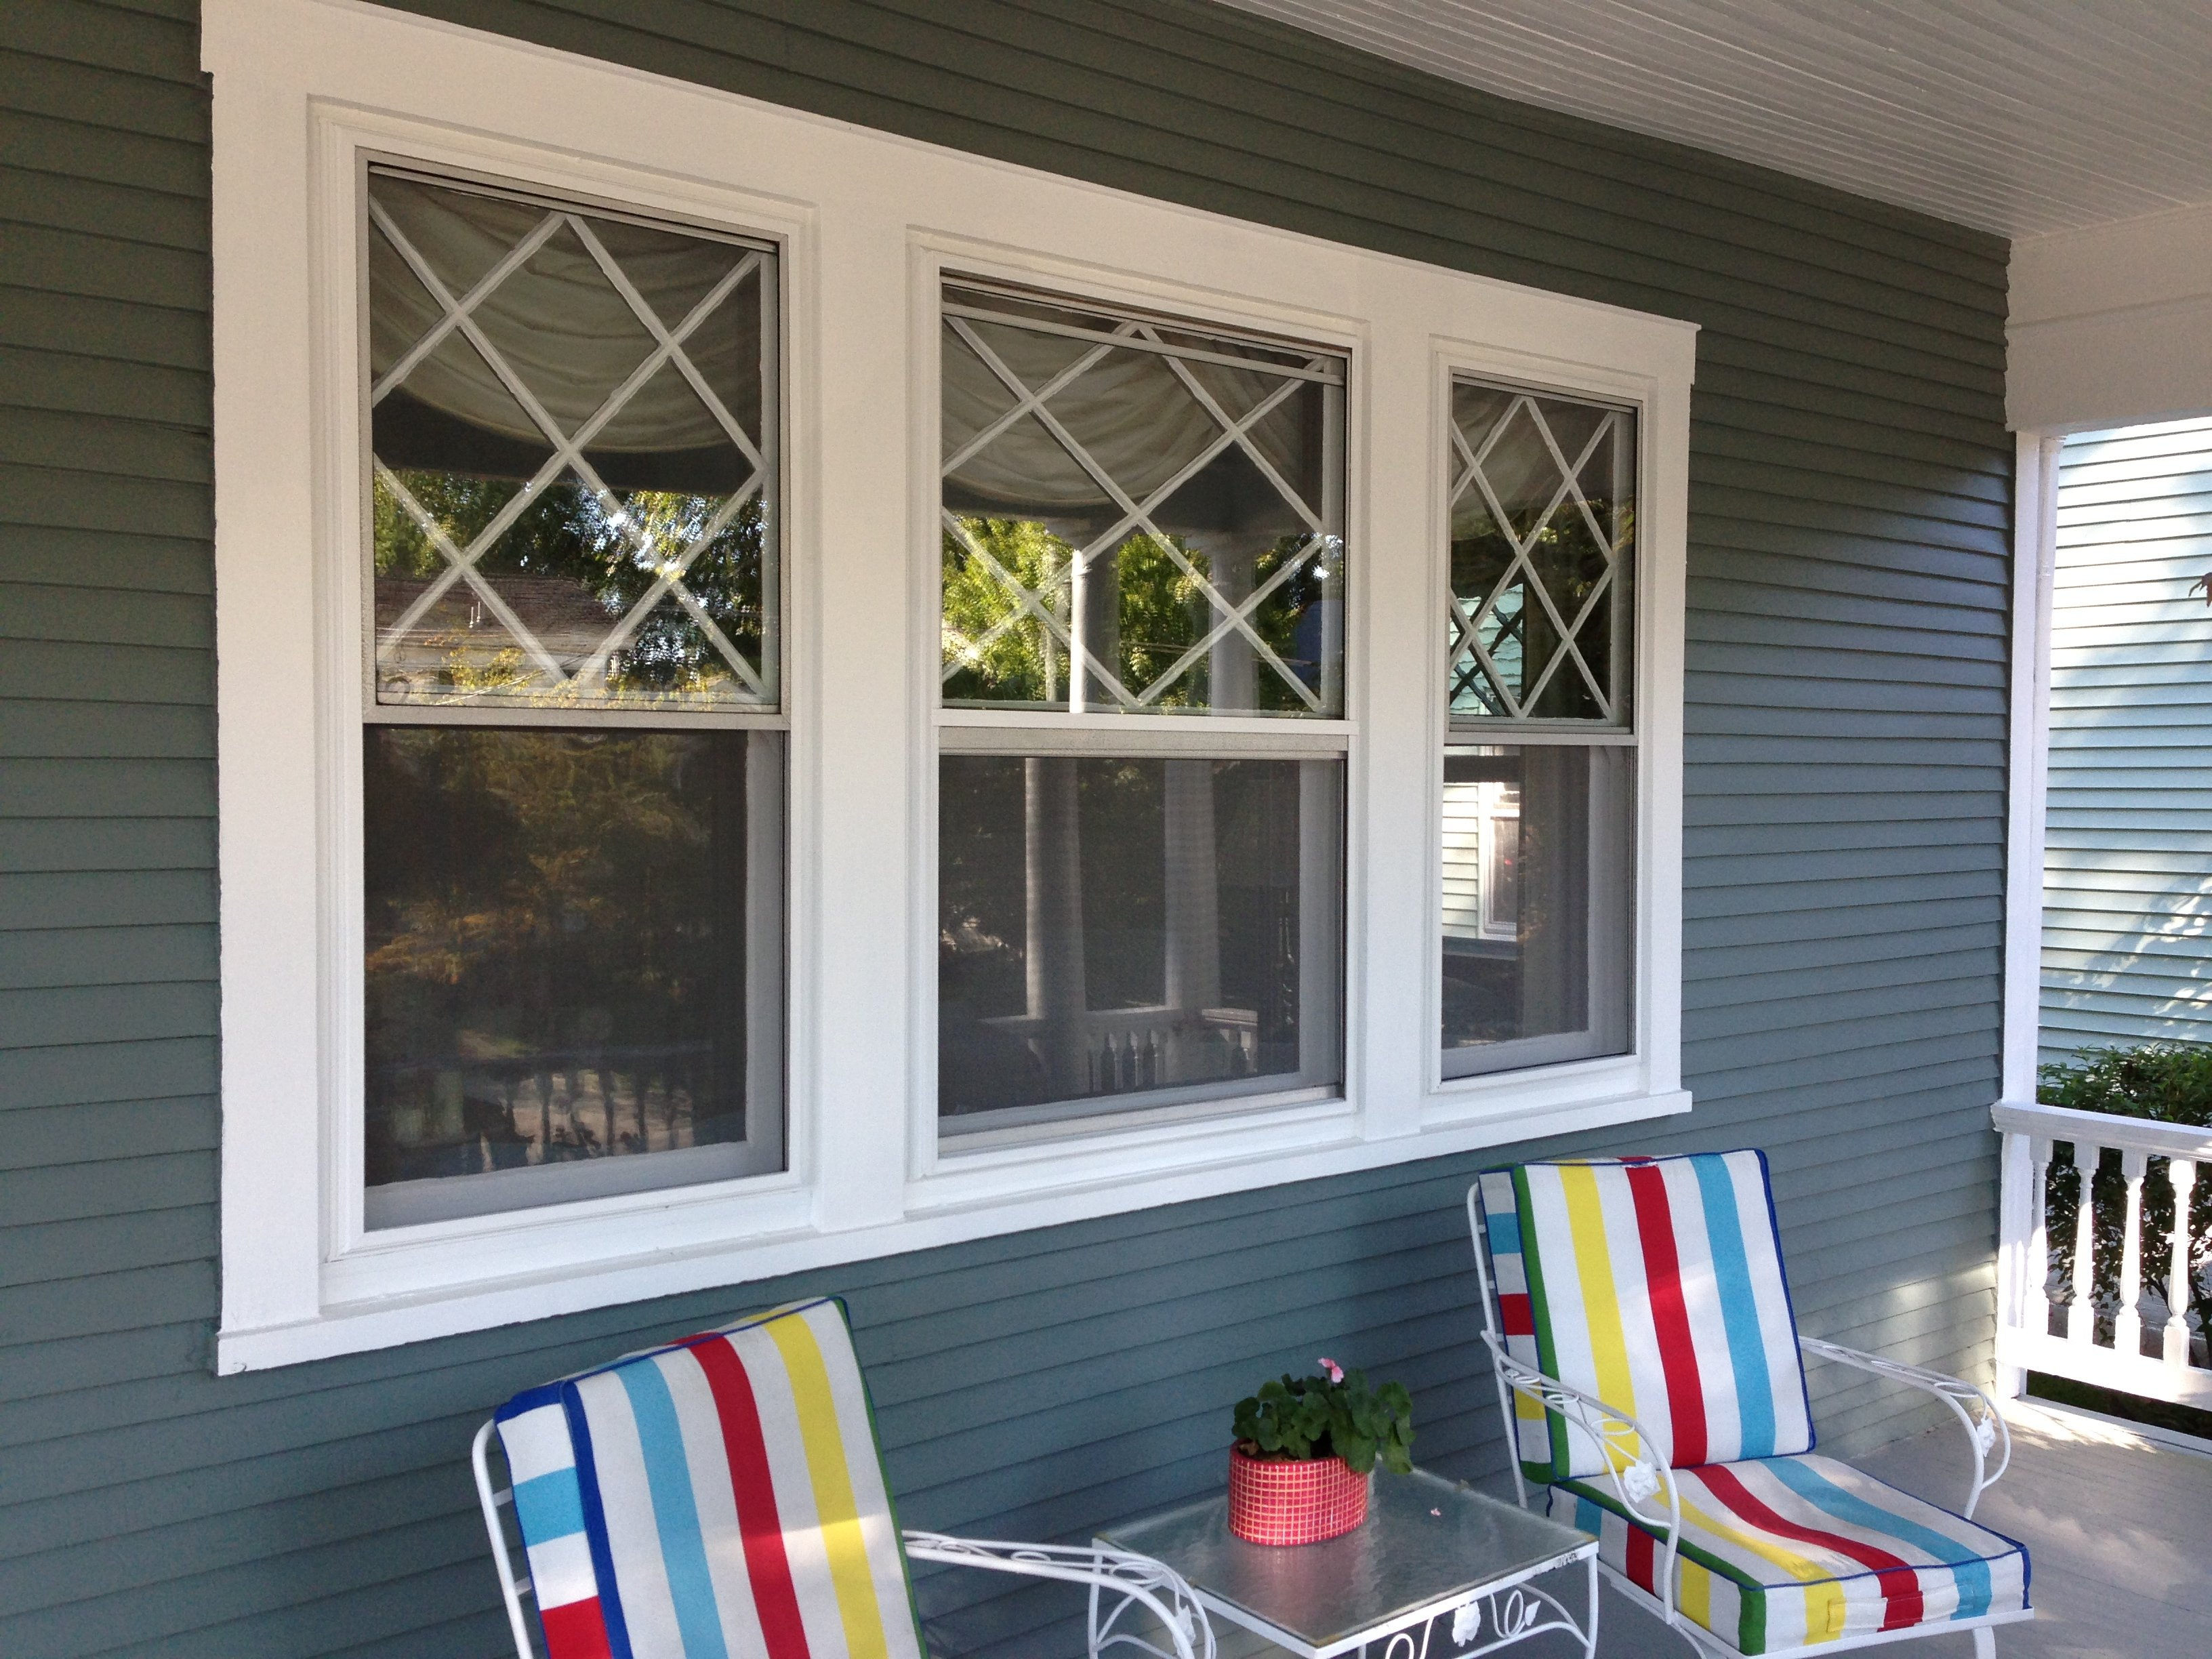 3-Lite Double Hung Windows